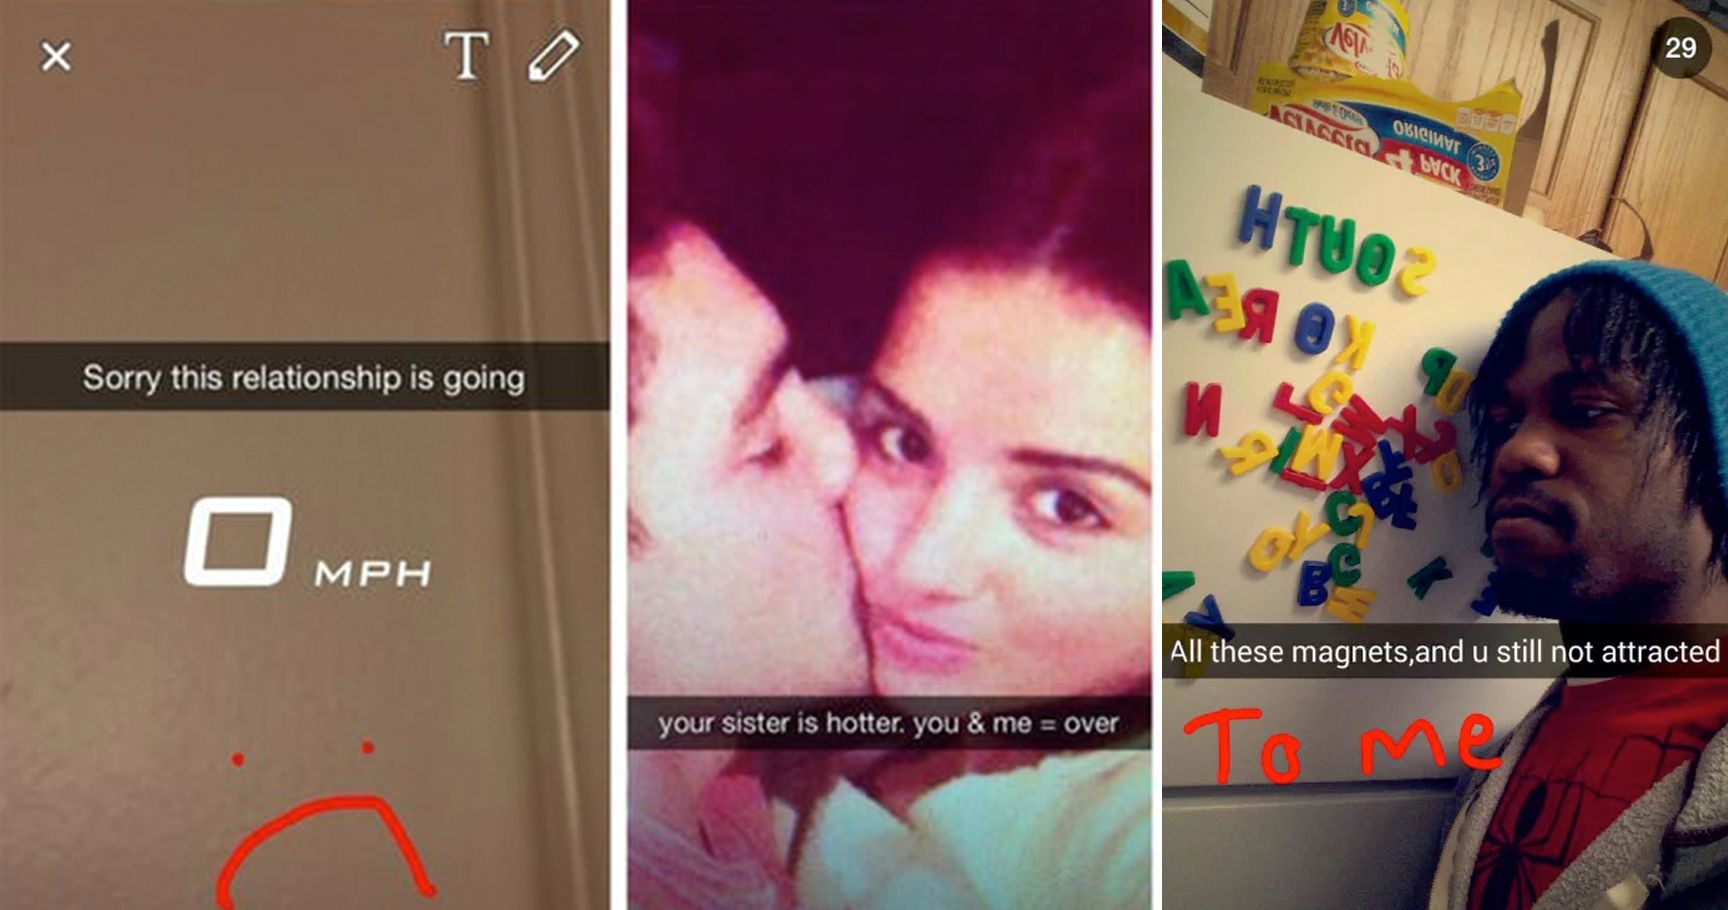 15 Breakup Snapchats That Are Ridiculously Brutal